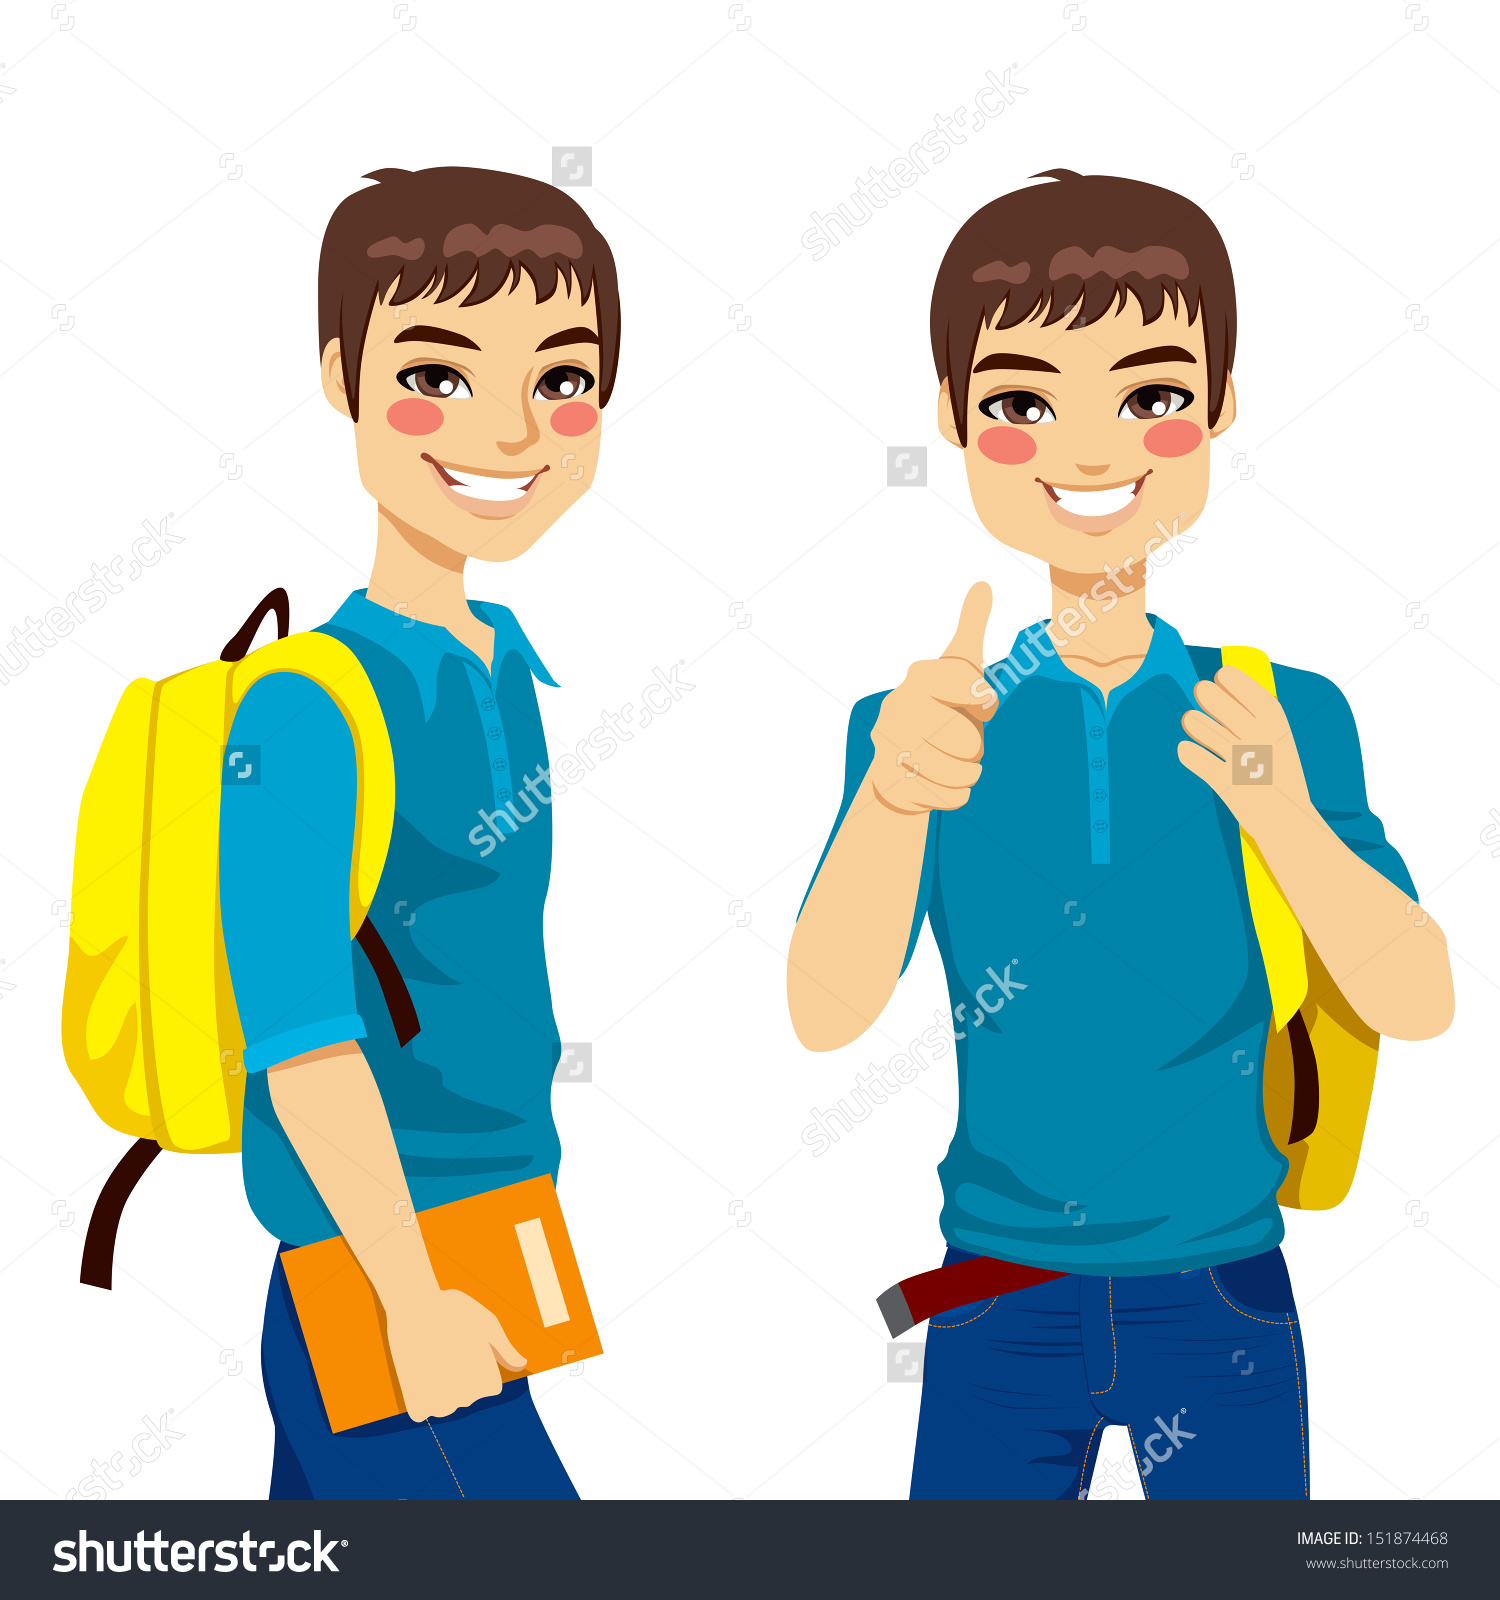 Student thumbs up clipart royalty free library Cool Teenage Student Making Thumbs Hand Stock Vector 151874468 ... royalty free library